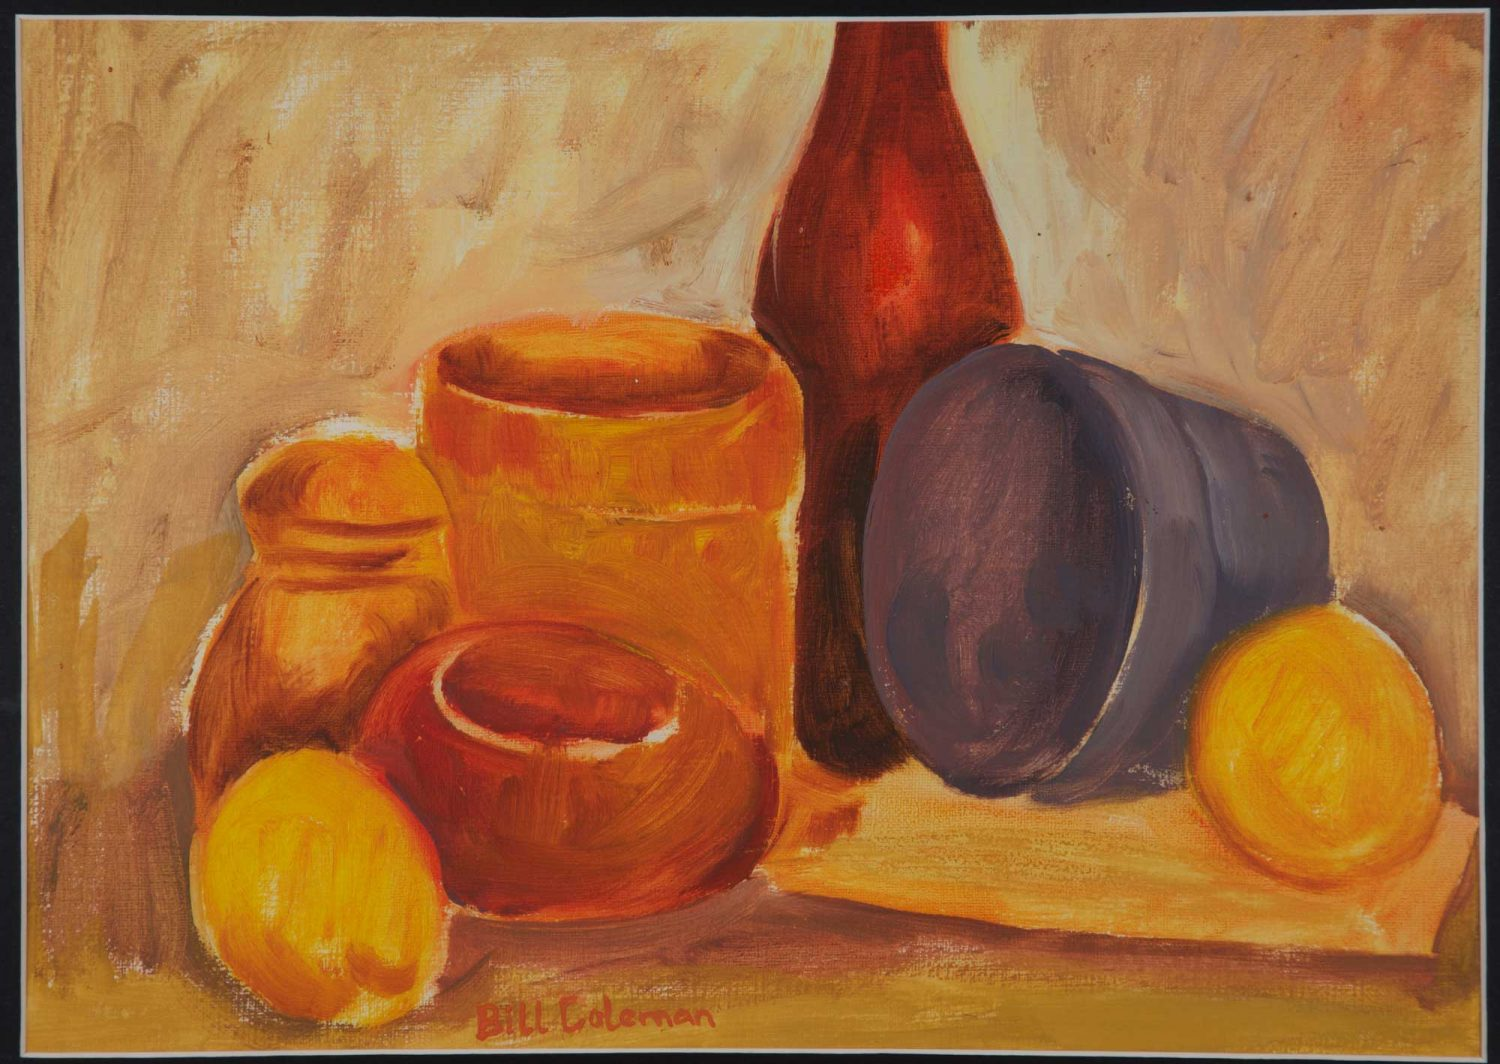 Bill Coleman Still Life with Fruit Jars and Bottles Artwork